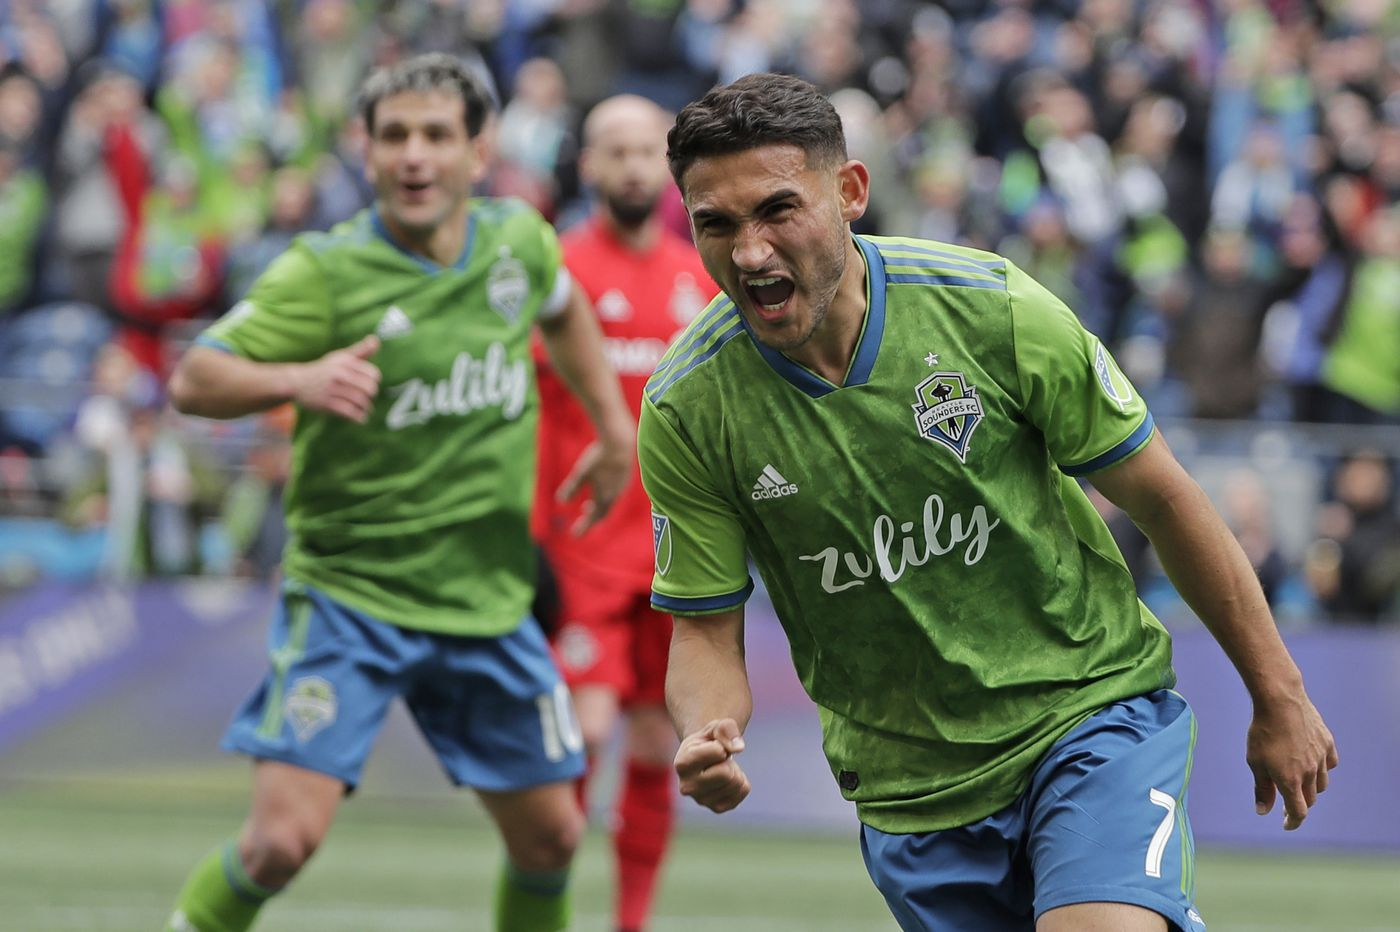 Seattle Sounders' Cristian Roldan will get to know Philadelphia well: first against the Union, then likely wit